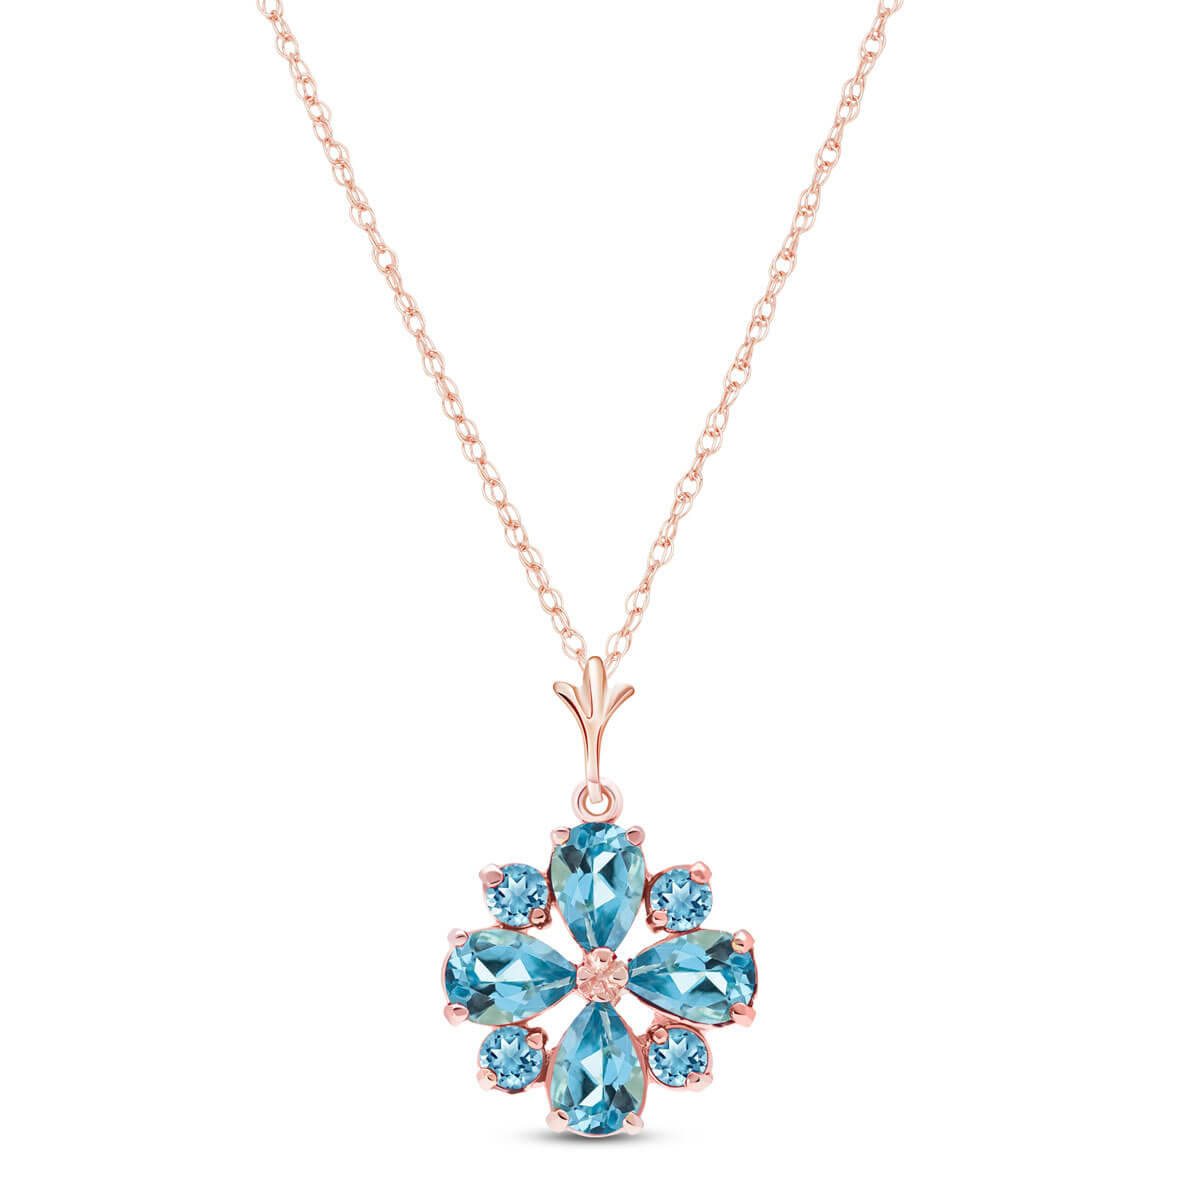 Blue Topaz Sunflower Pendant Necklace 2.43 ctw in 9ct Rose Gold